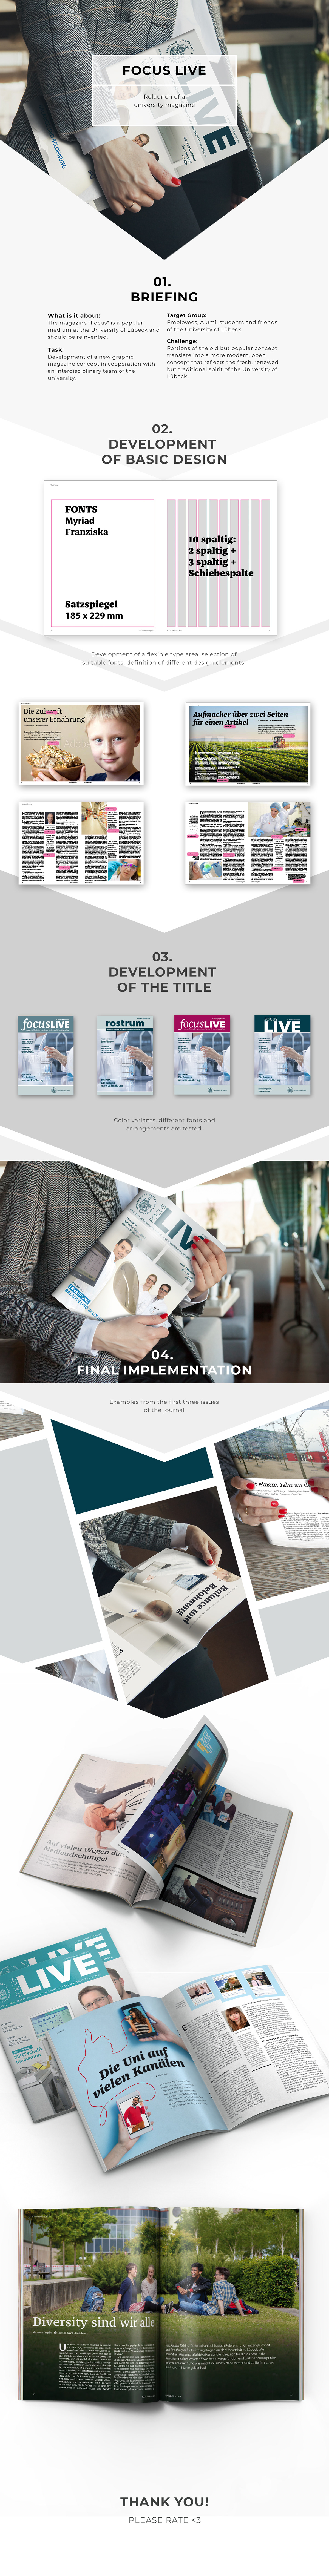 Adobe Portfolio Corporate Communication print editorial design  University magazine